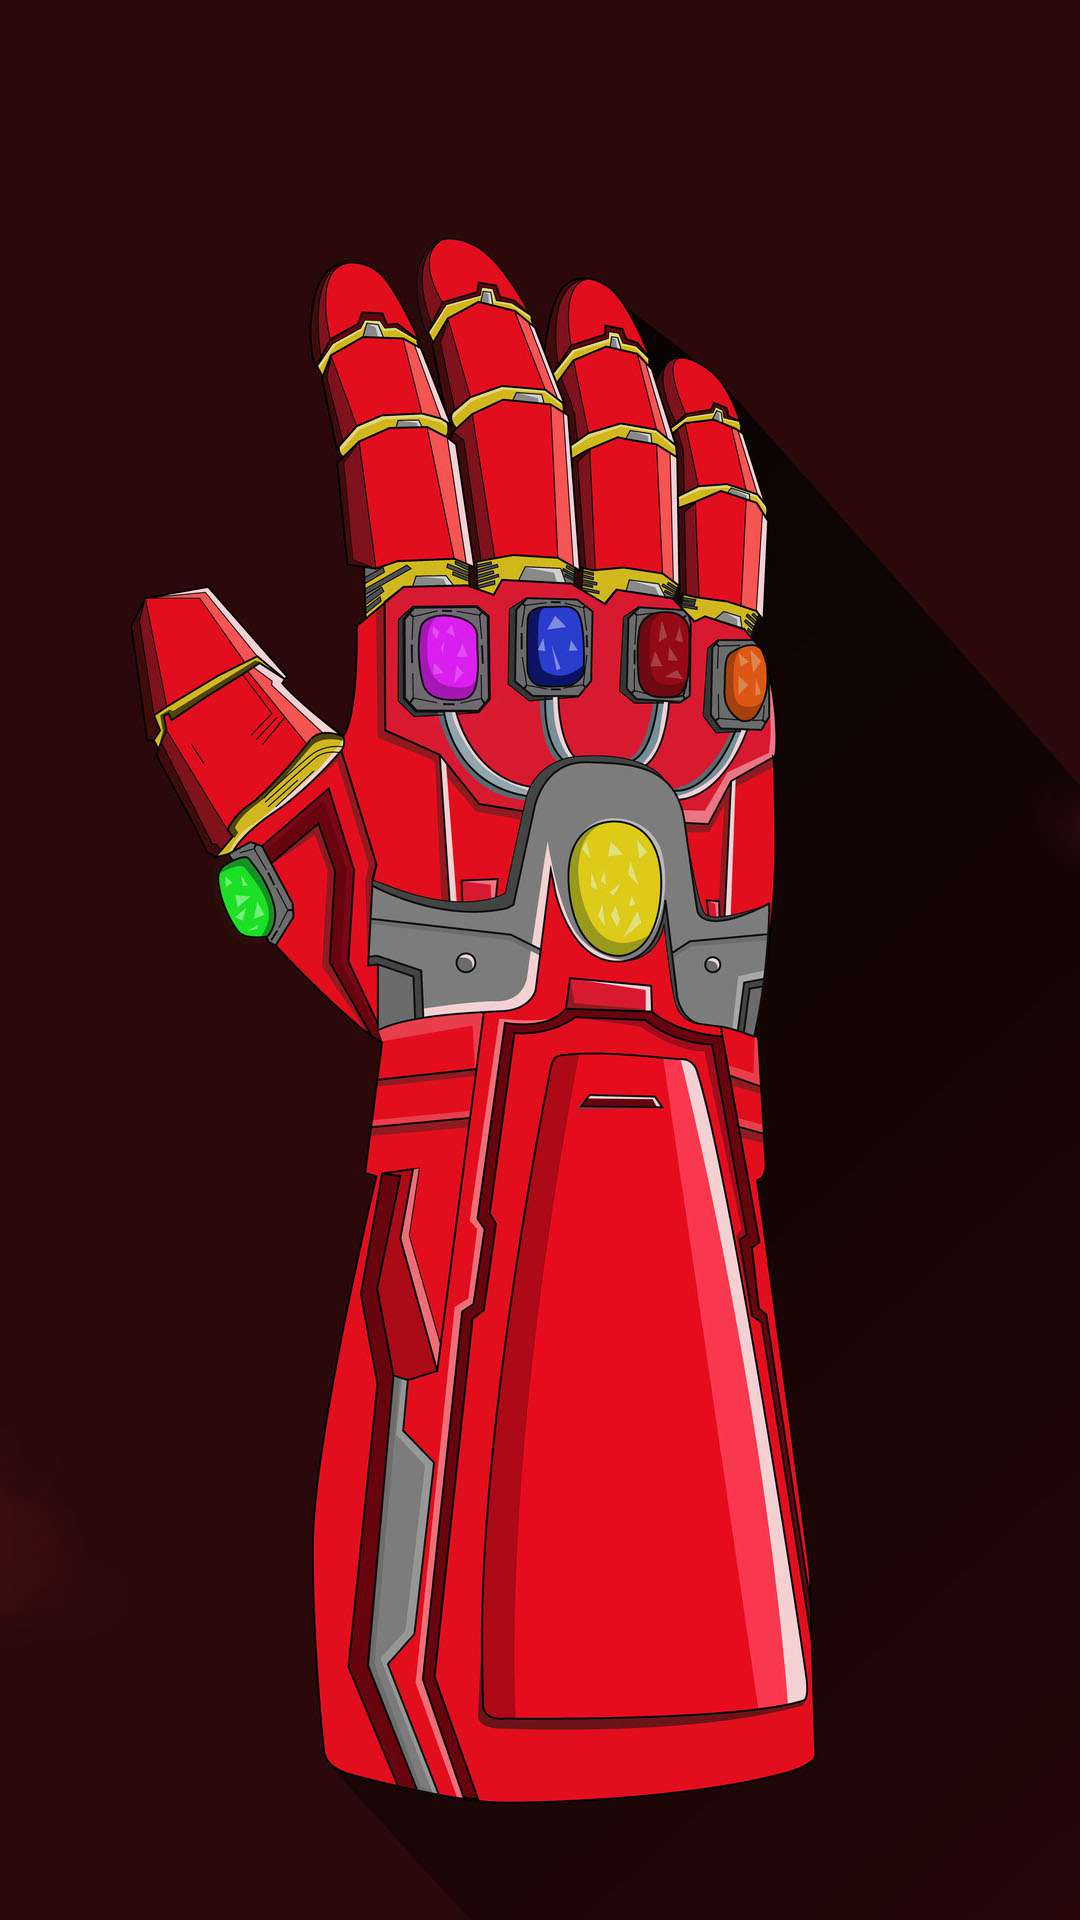 Iron Man Nano Infinity Gauntlet iPhone Wallpaper